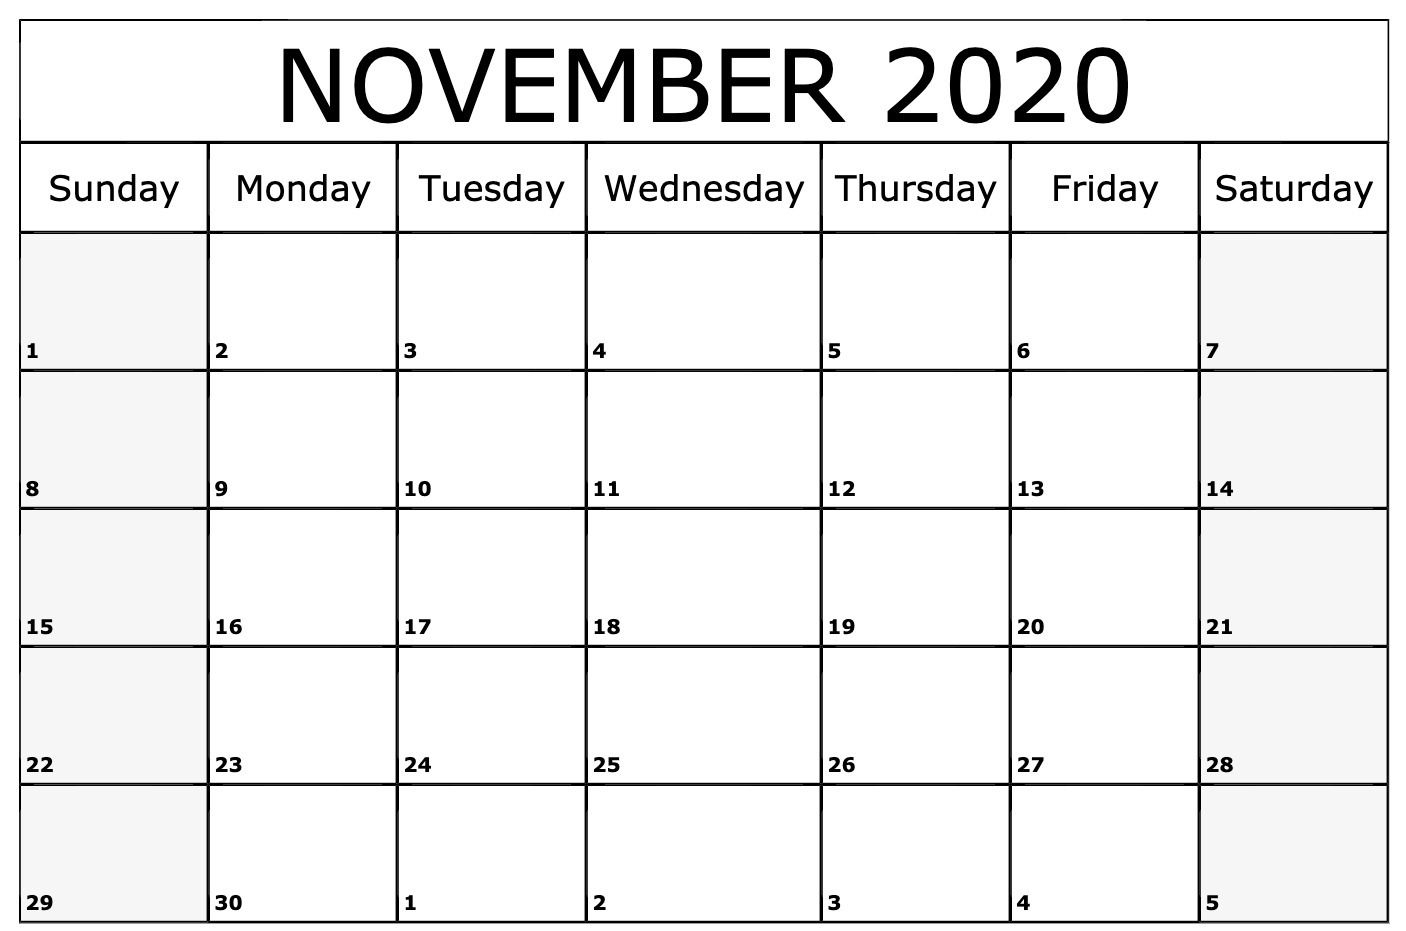 November 2020 Calendar Printable Template | July Calendar